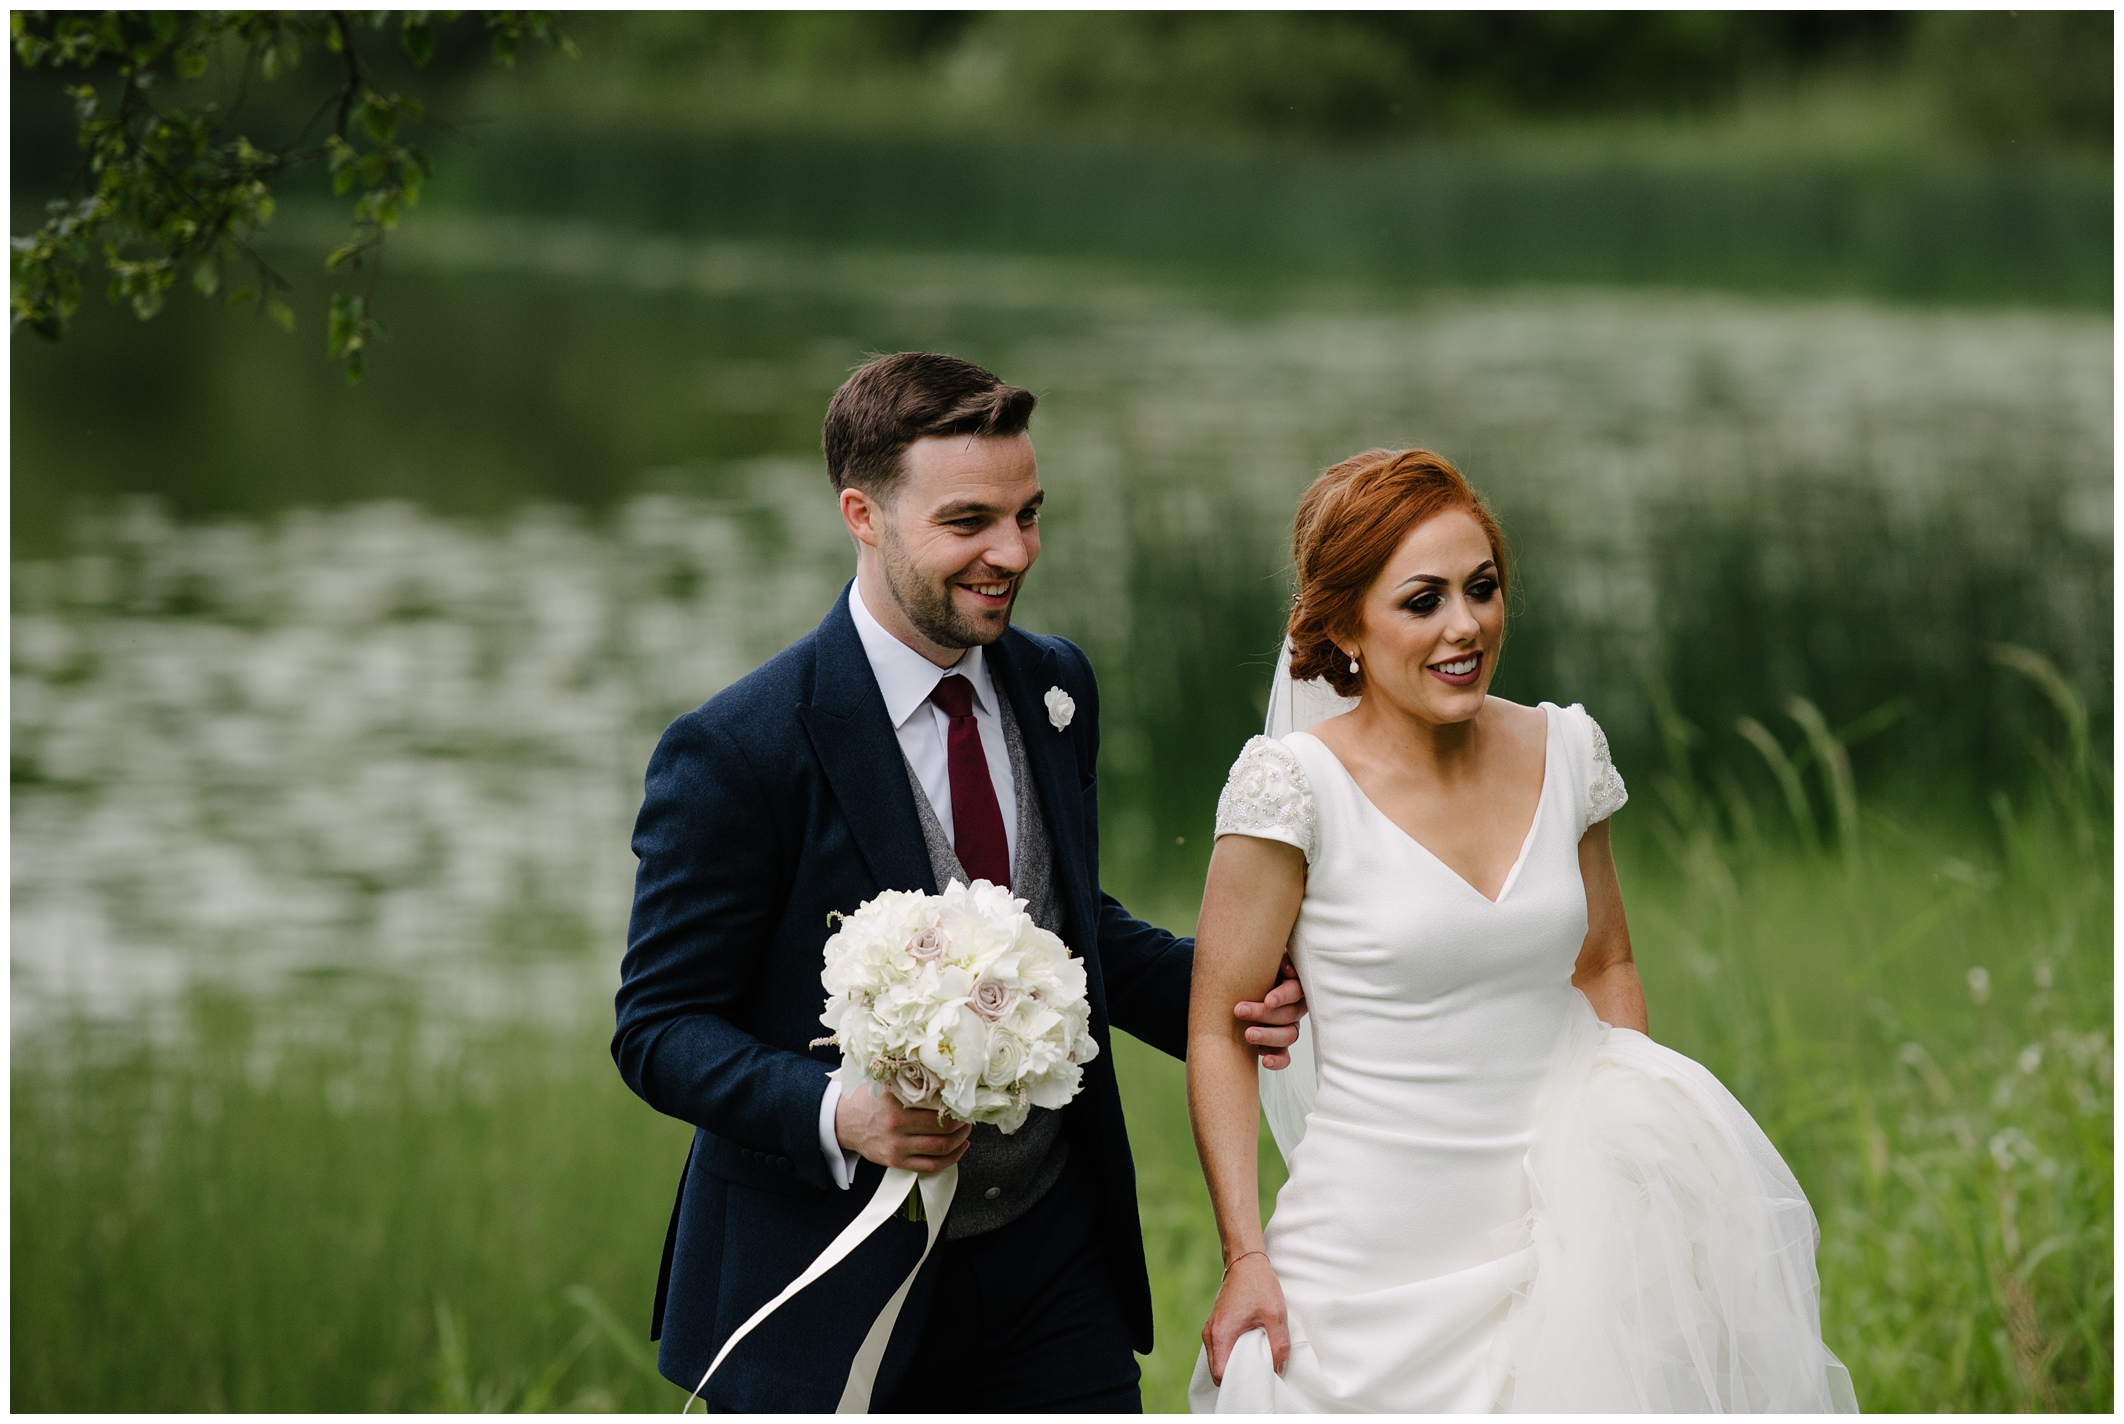 sinead_emmet_farnham_estate_wedding_jude_browne_photography_0129.jpg